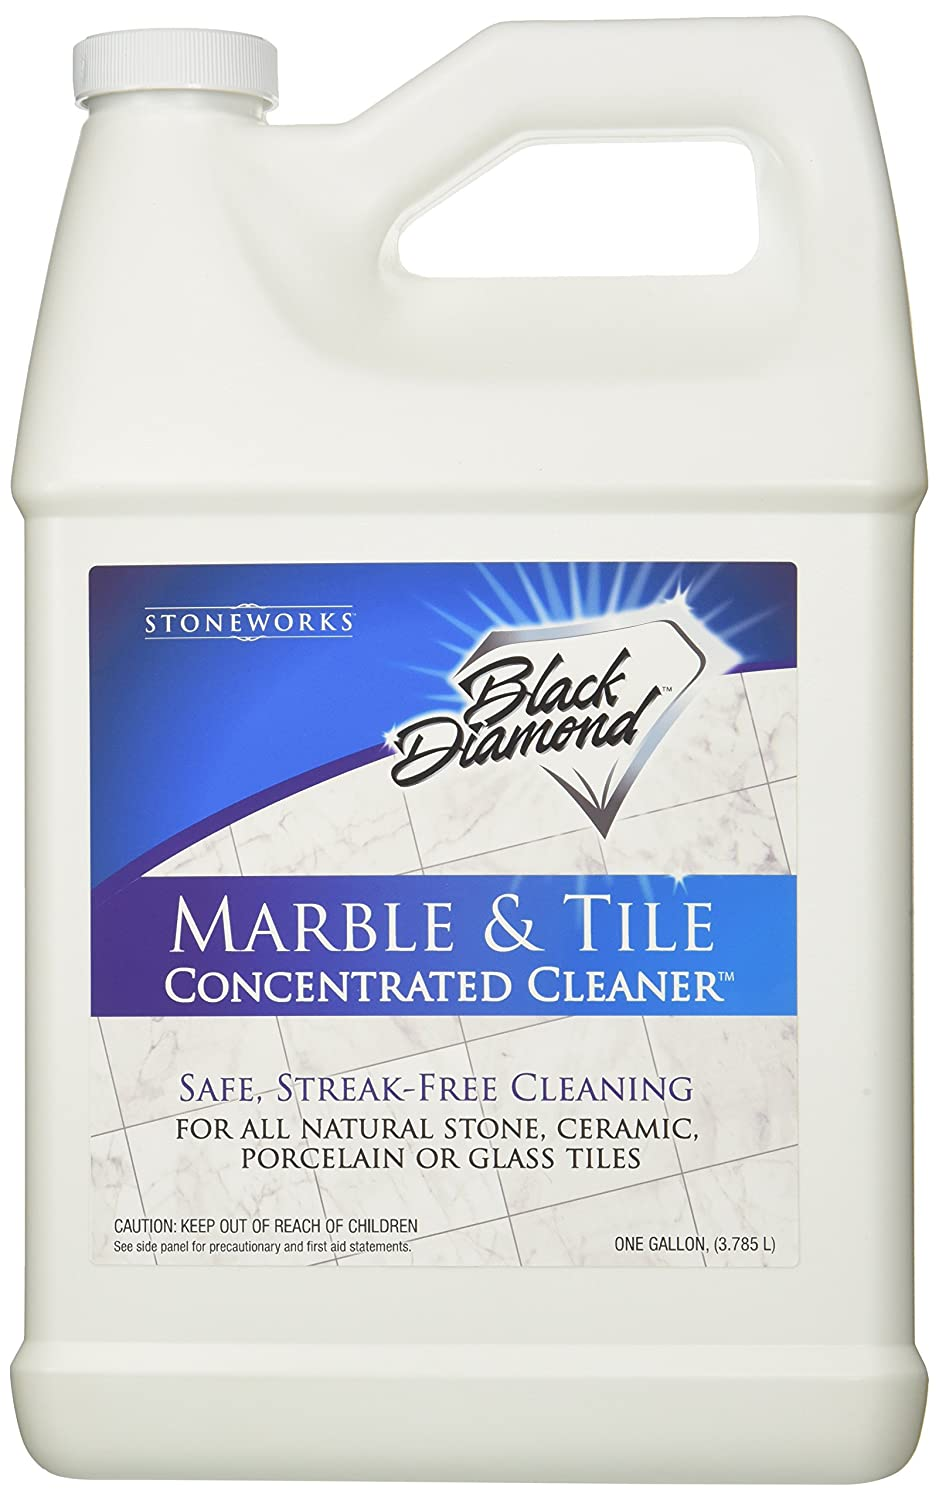 Amazon black diamond marble tile floor cleaner great for amazon black diamond marble tile floor cleaner great for ceramic porcelain granite natural stone vinyl linoleum dailygadgetfo Images